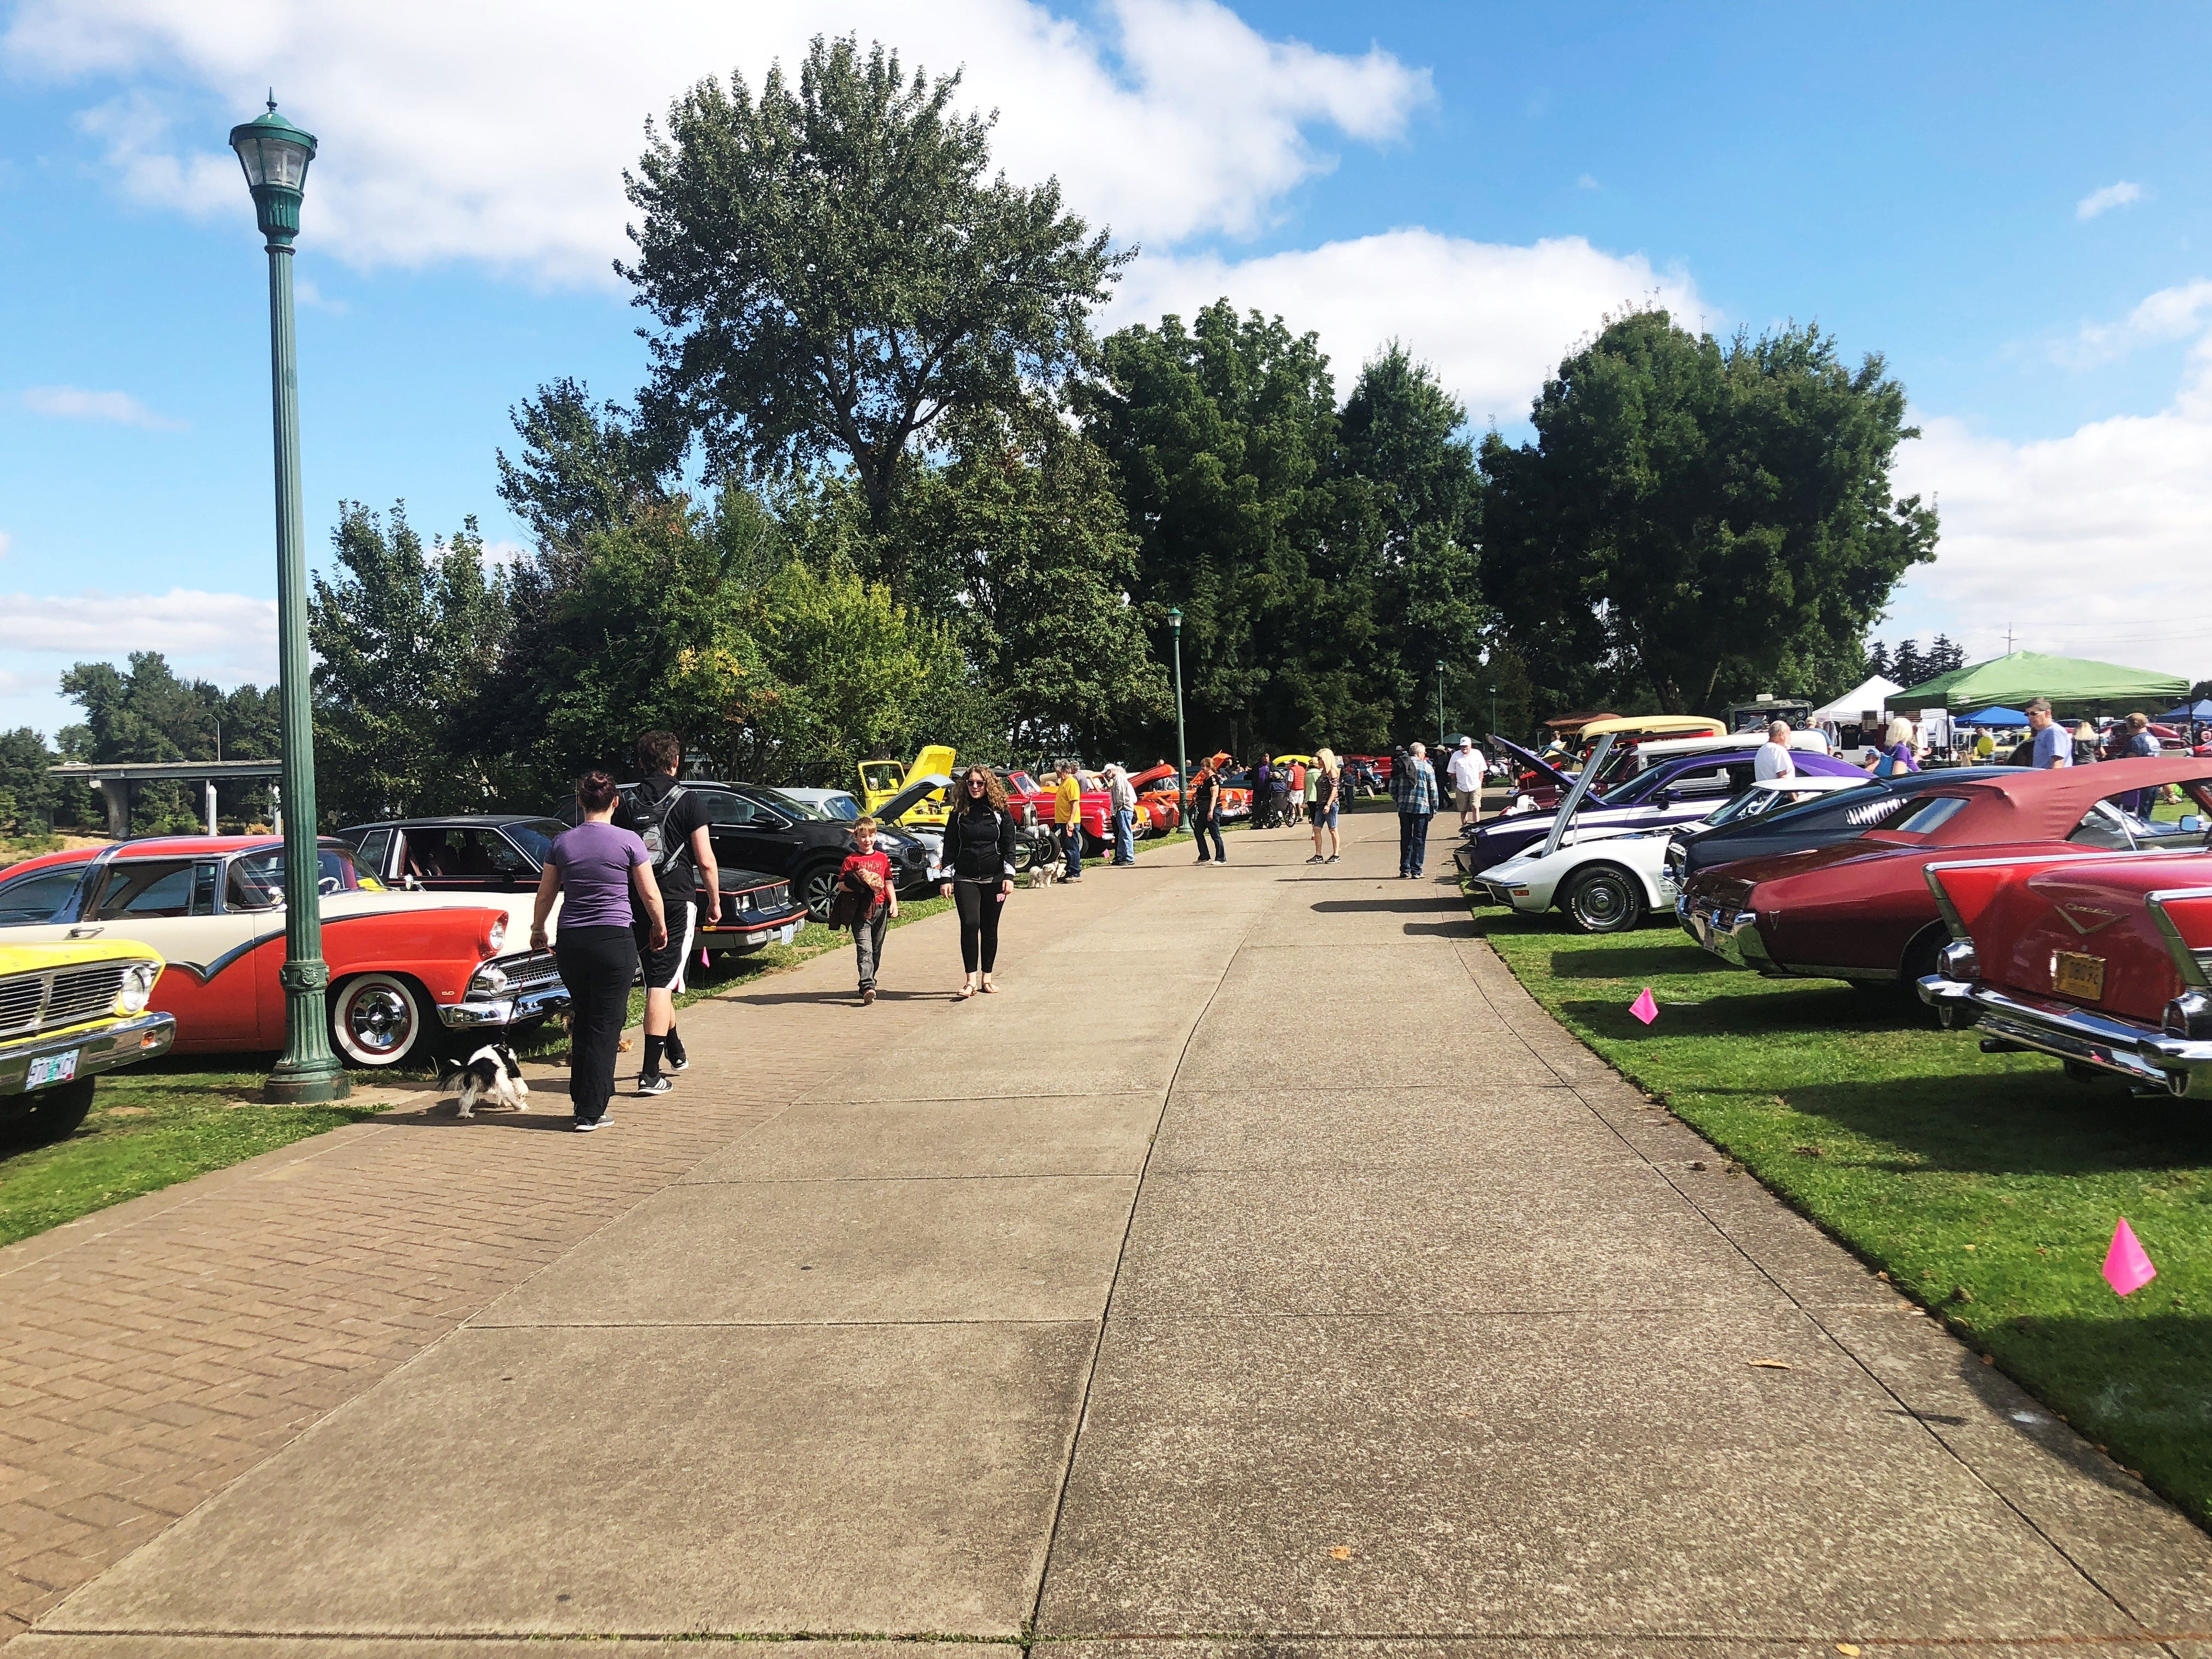 Spectators walk through two rows of cars at the 27th Annual Carousel Cruise at Riverfront Park in Salem on Saturday, Sept. 1.